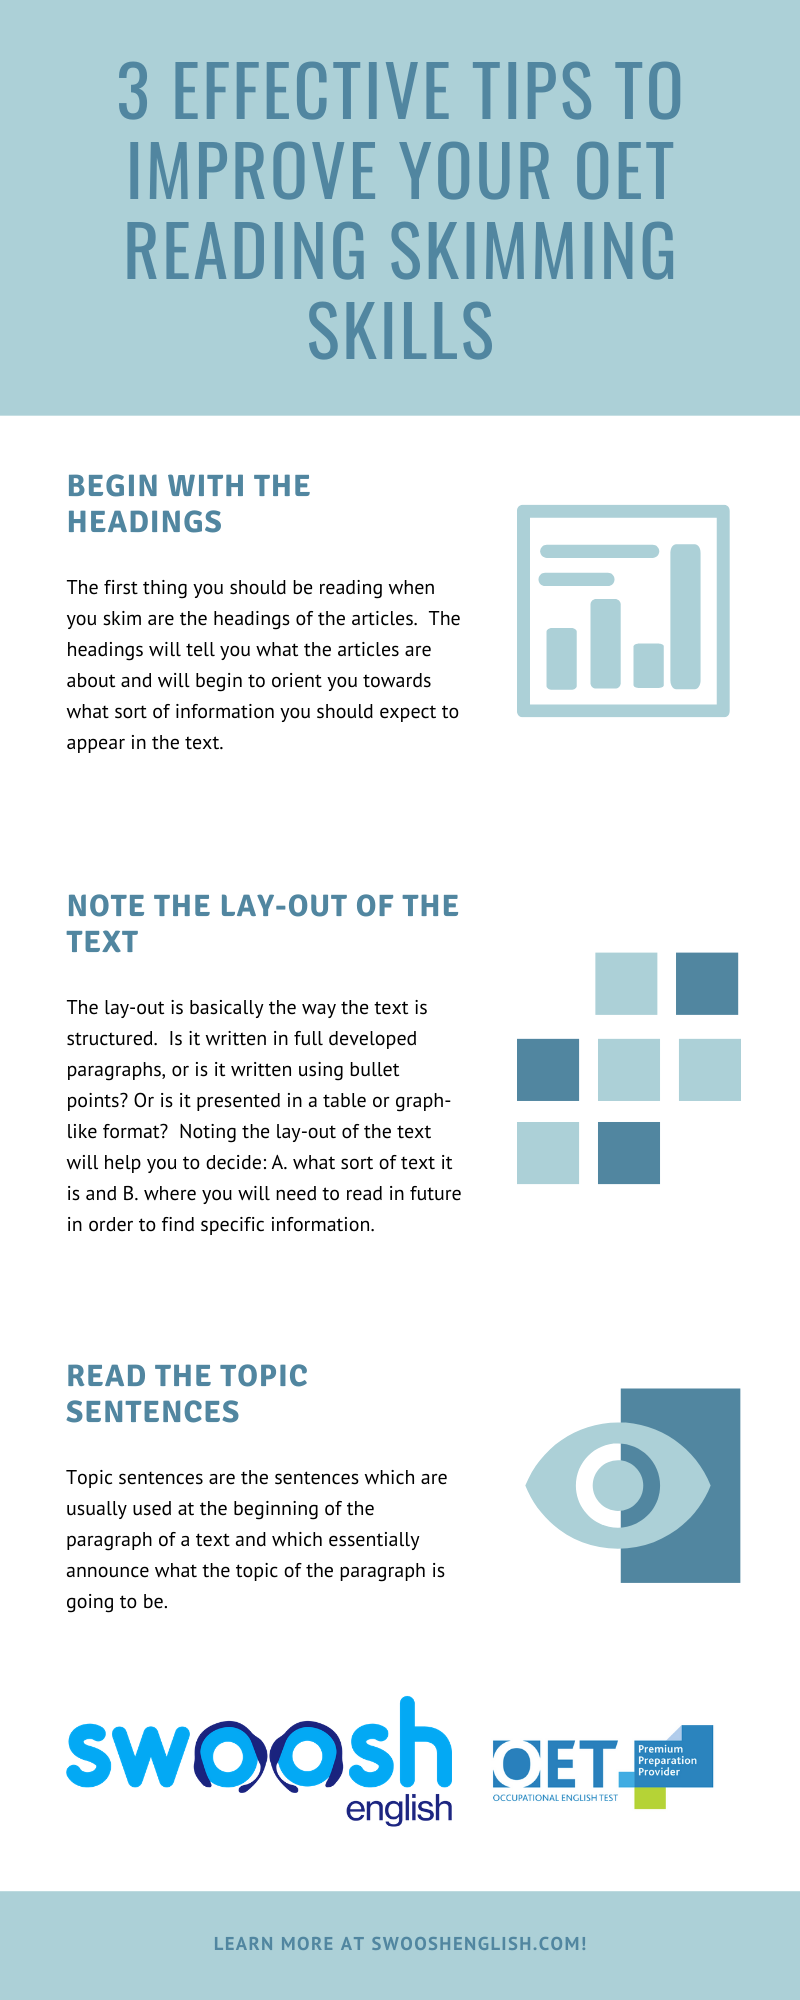 Three Effective tips to improve your OET reading skimming skills infographic